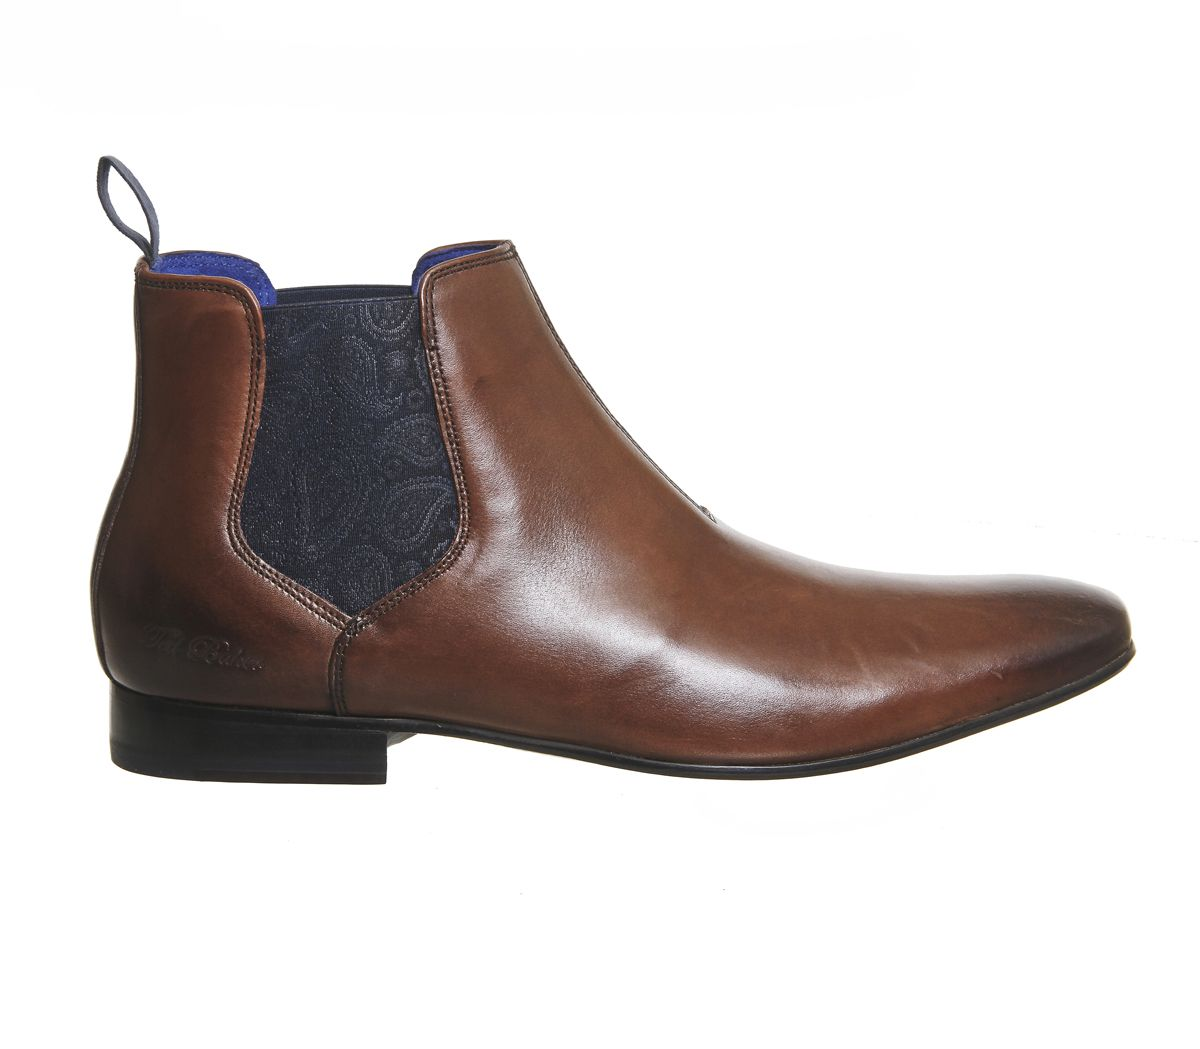 5314aac3943c Ted Baker Hourb 2 Chelsea Boots Brown Leather - Boots